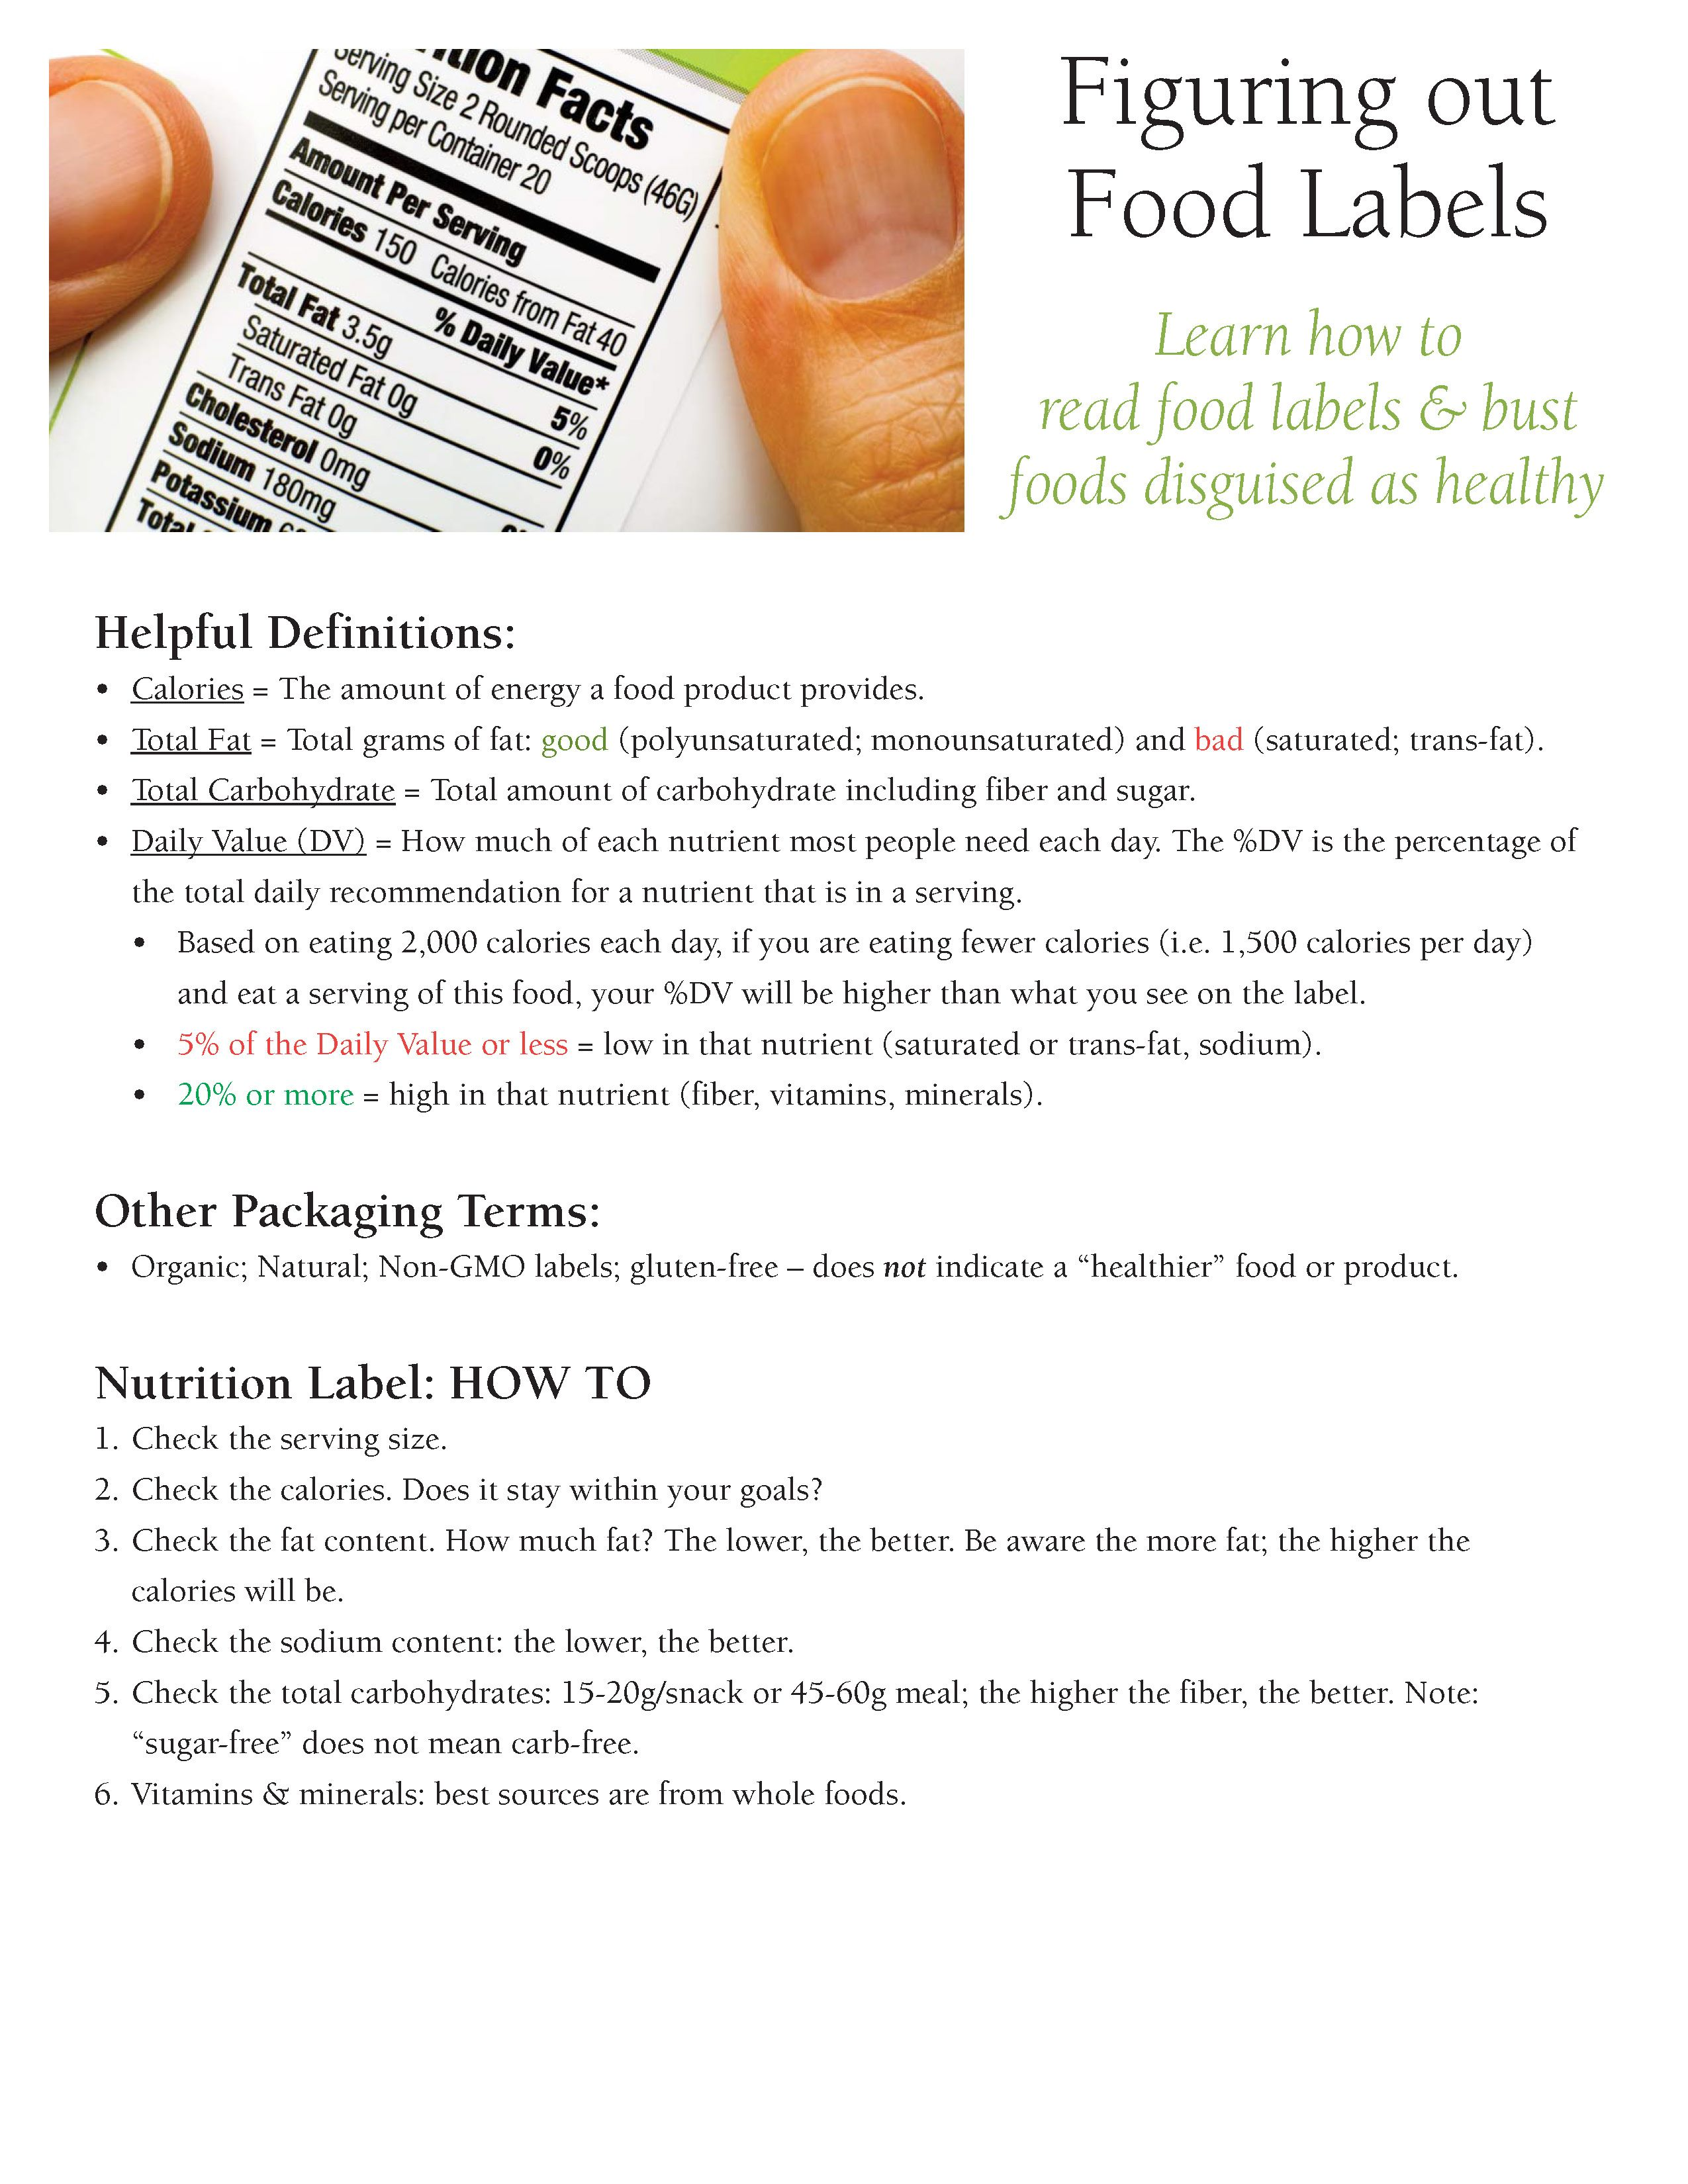 Learn How To Read Food Labels And Bust Foods Disguised As